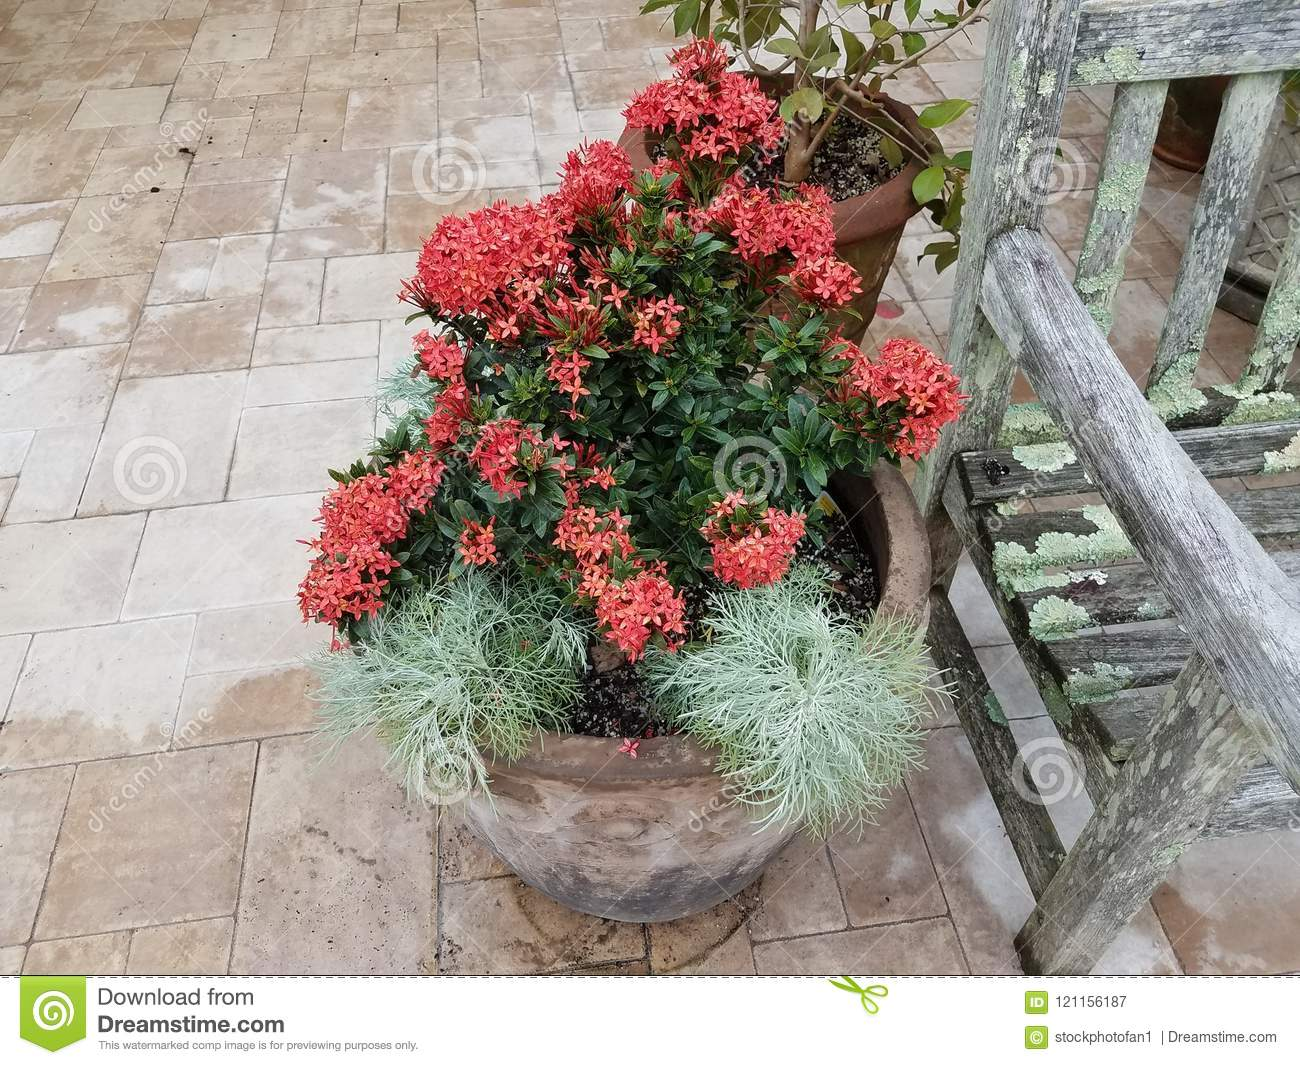 Plant With Green Leaves And Pink Flowers In Flower Pot Near Wood